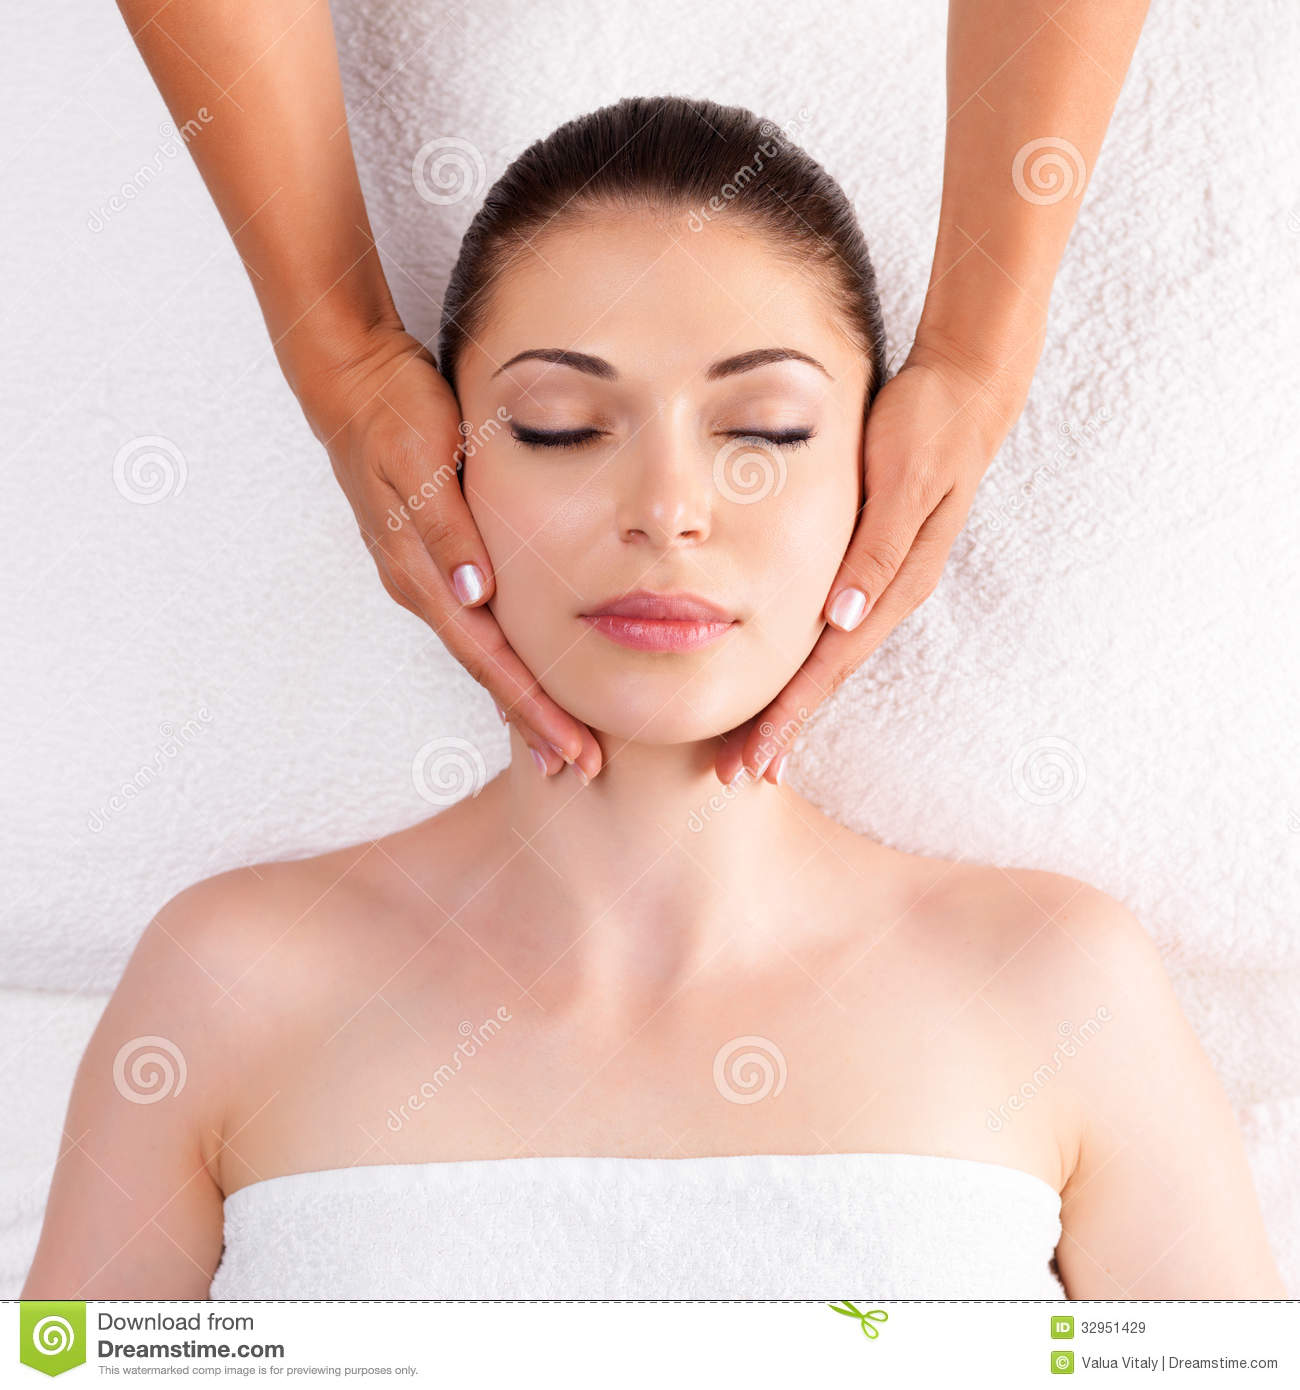 Woman Having Massage Of Body In Spa Salon Royalty Free Stock Images - Image: 32951429